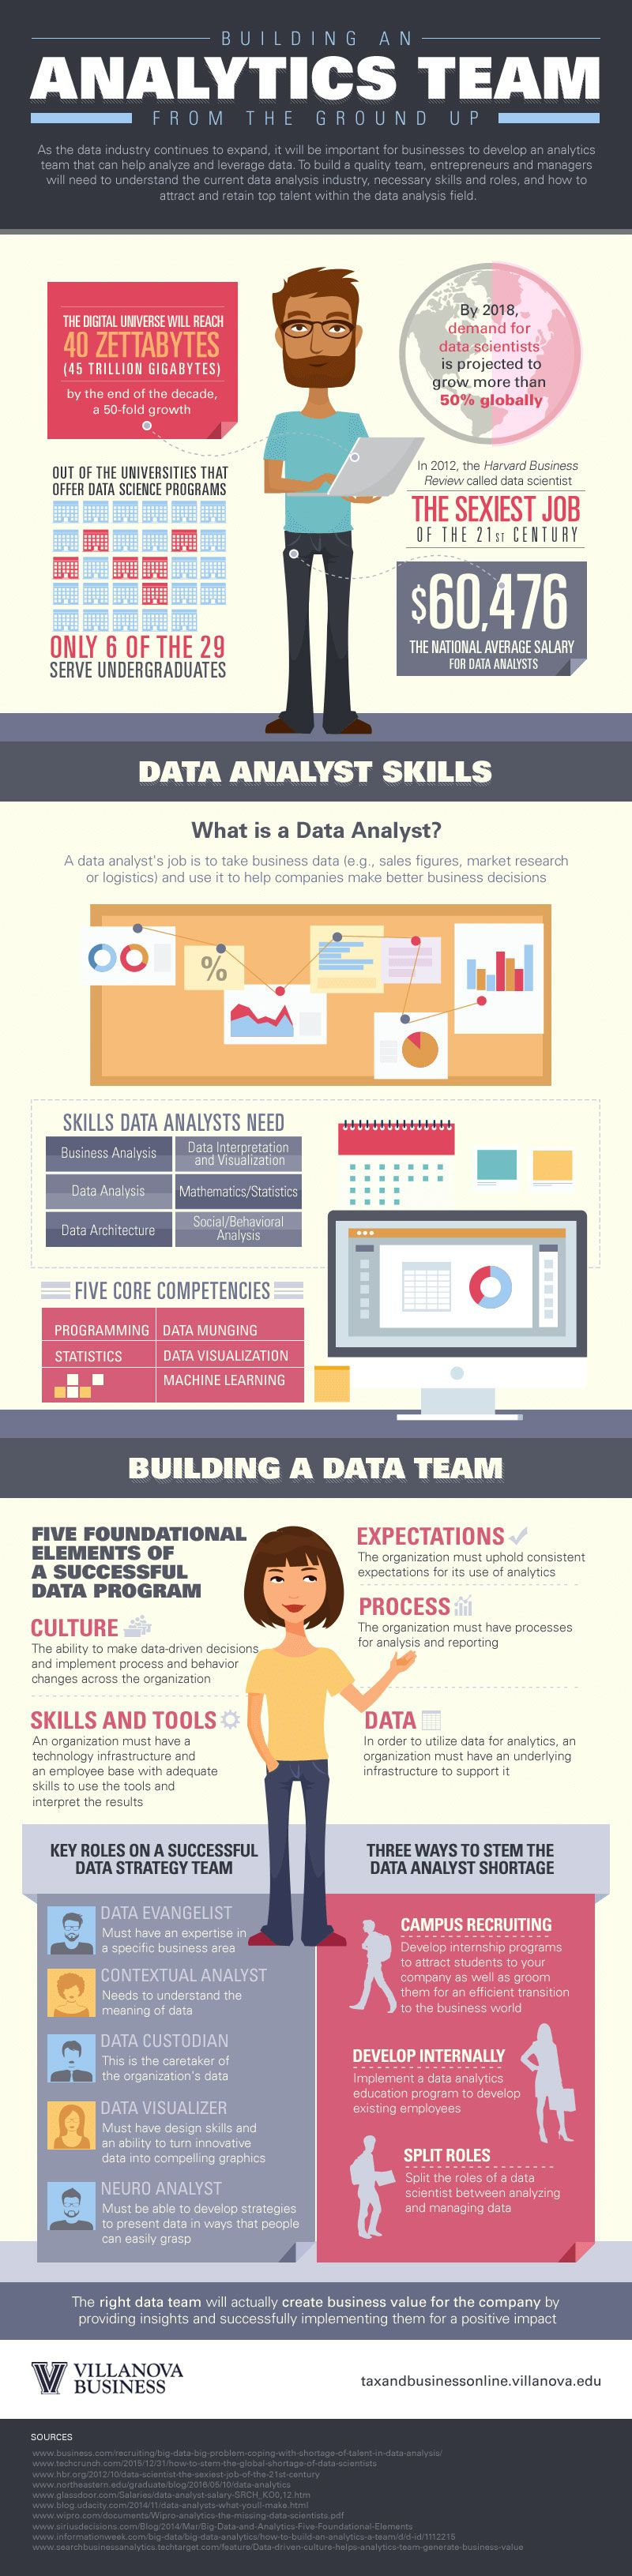 Building an Analytics Team From the Ground Up #Infographic